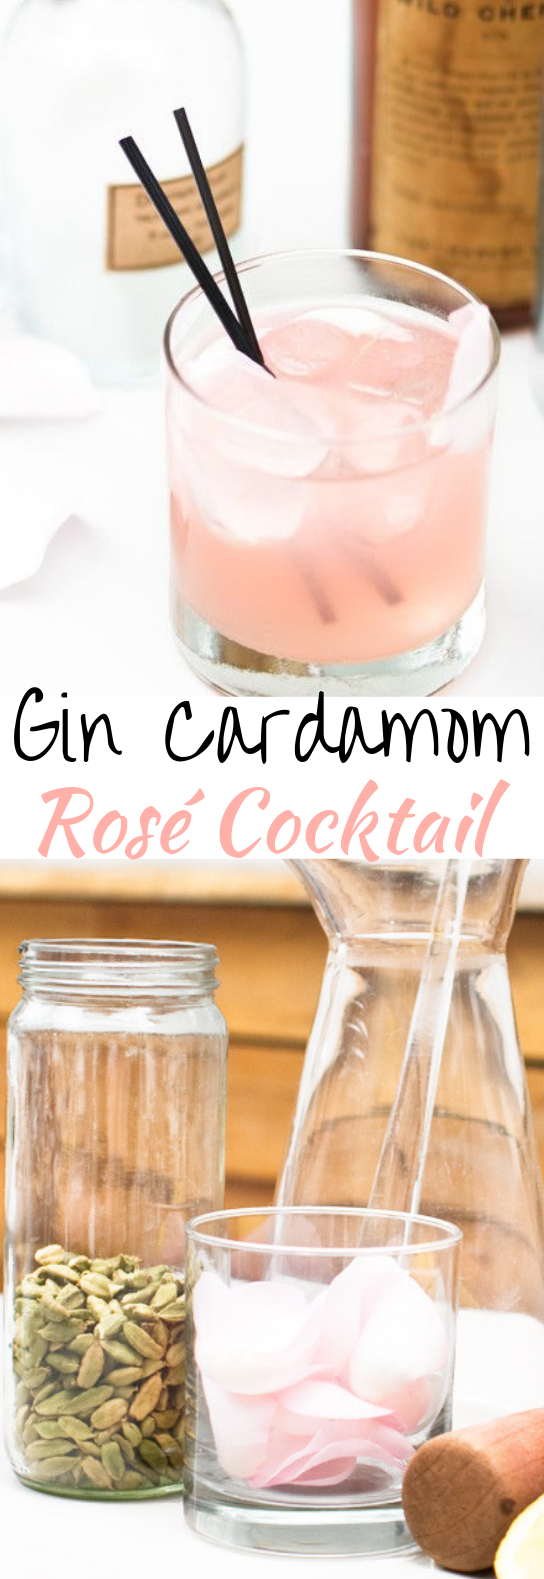 Gin Cardamom Rosé Cocktail #cocktails #drinks